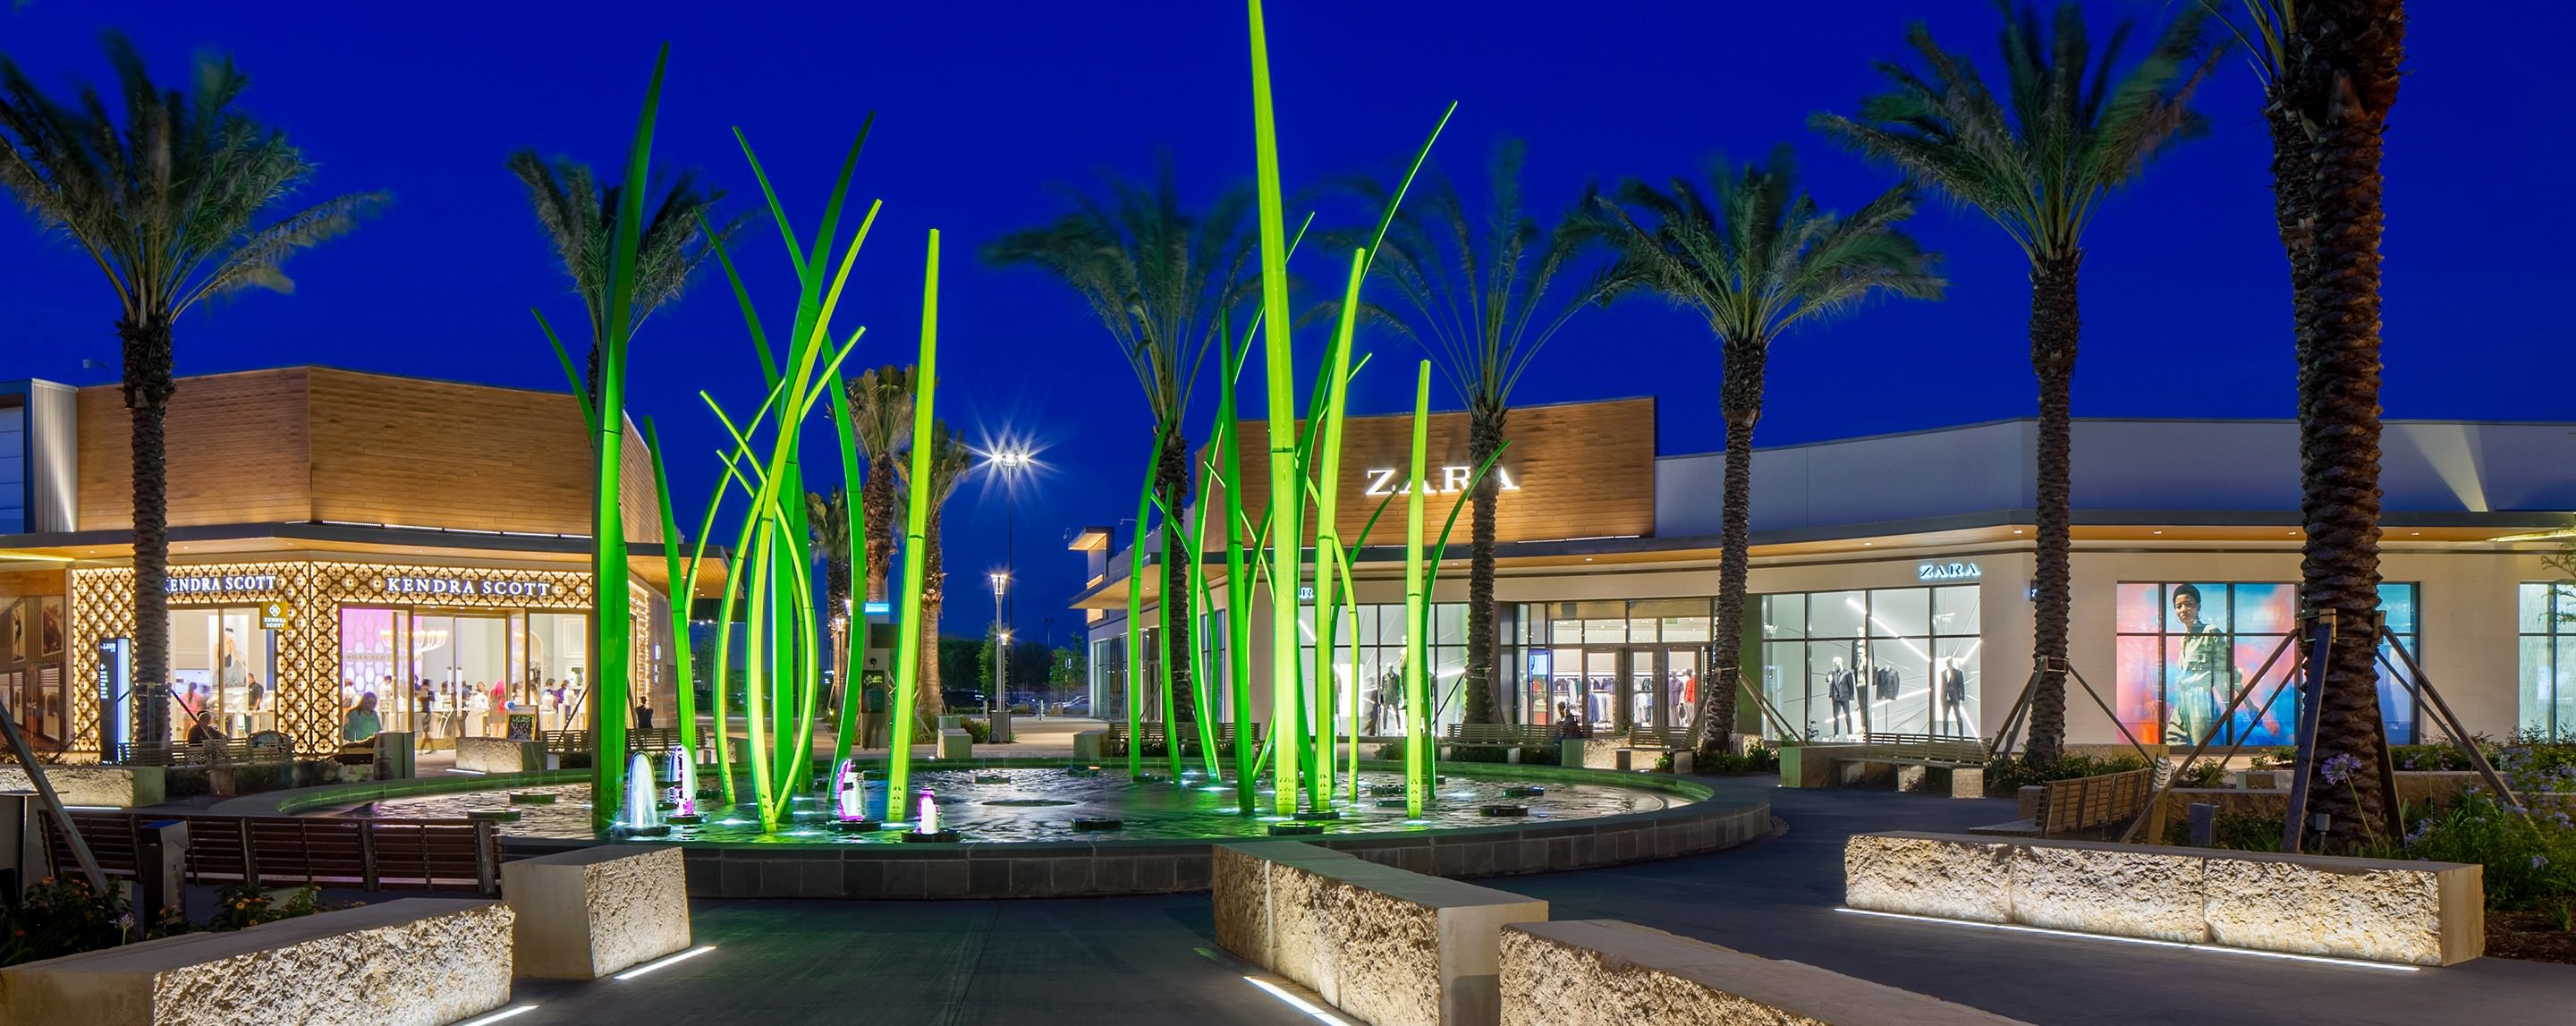 An outside common area at night is light up by a running fountain with benches and resting areas for shoppers.